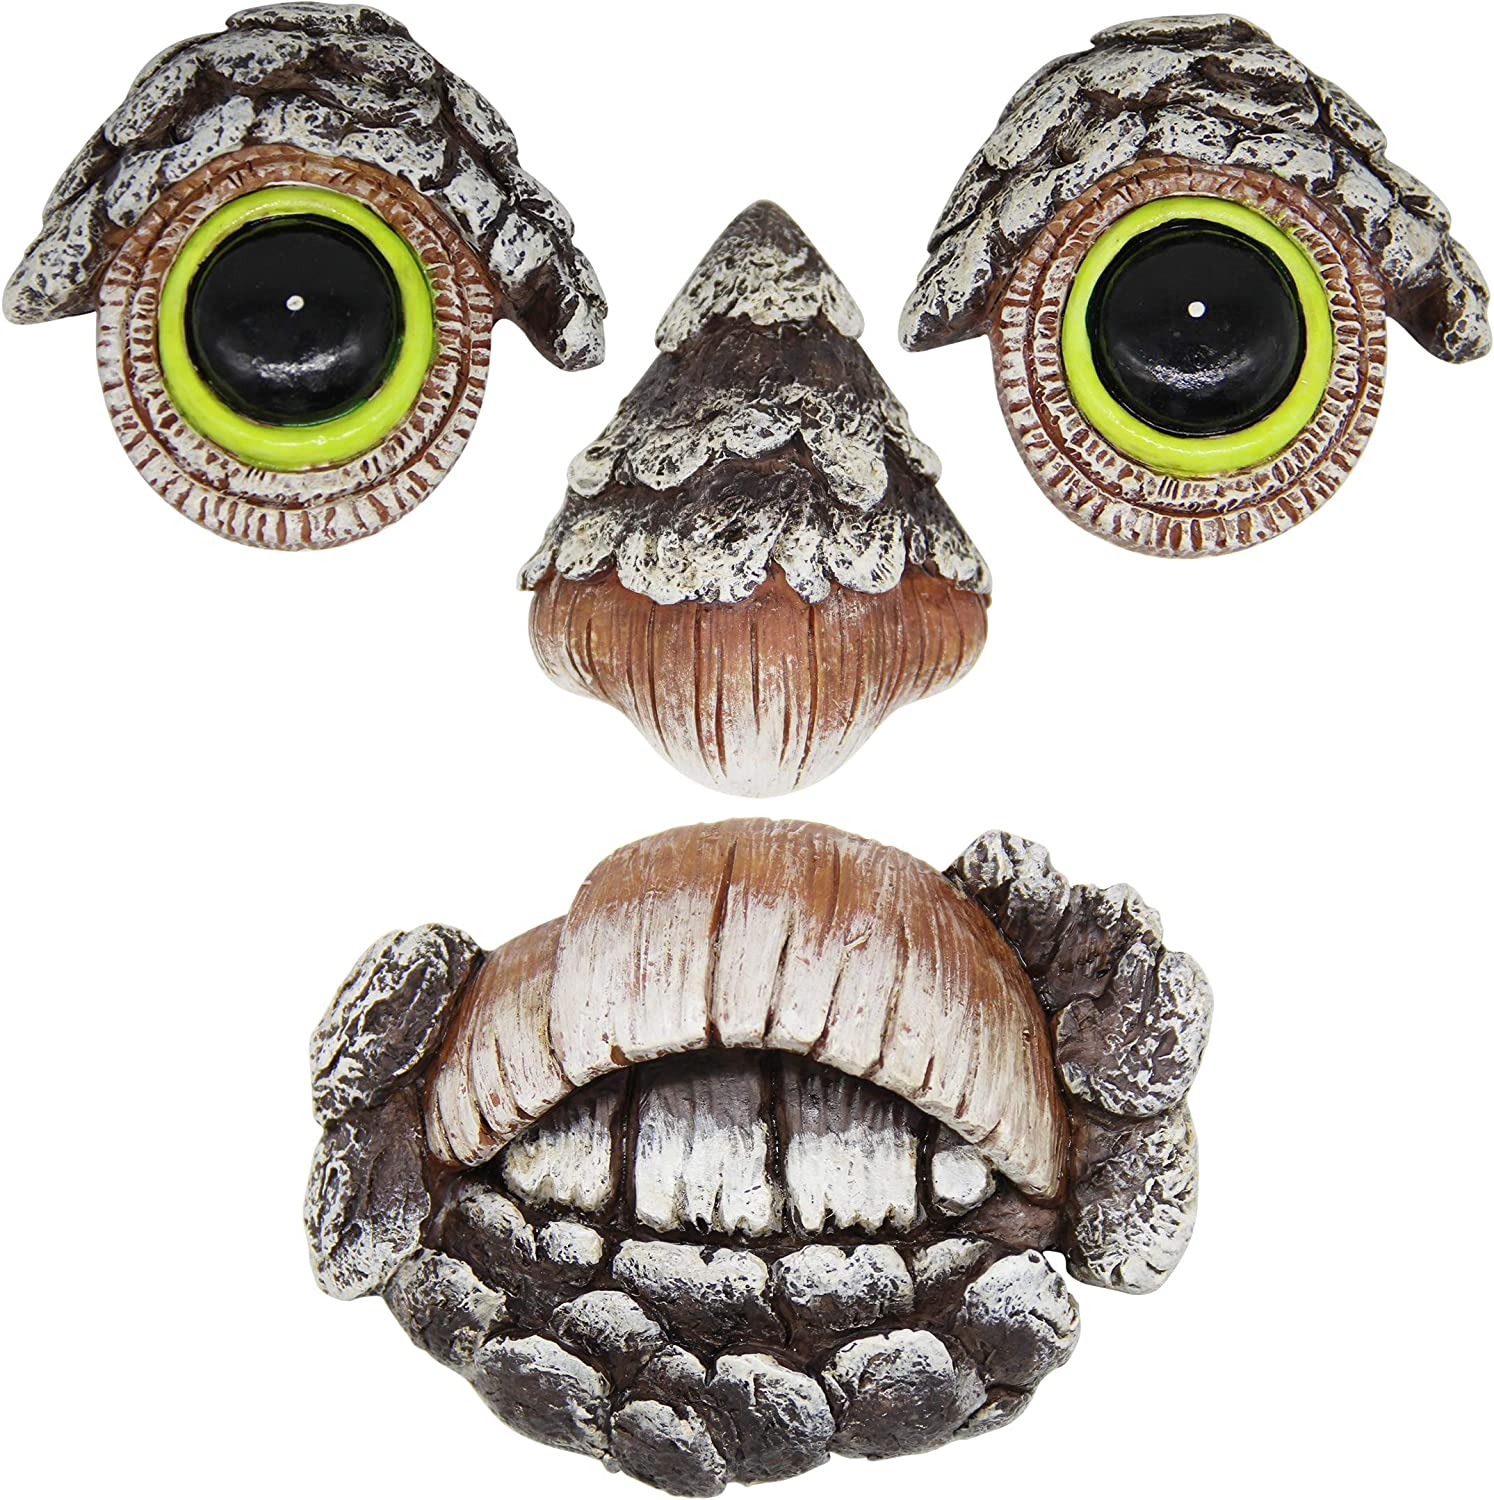 Zcaukya Tree Face Decor Glow Eyes in Dark, Fun Old Man Tree Sculpture Outdoor Yard Art Garden Decorations, 4 Pieces